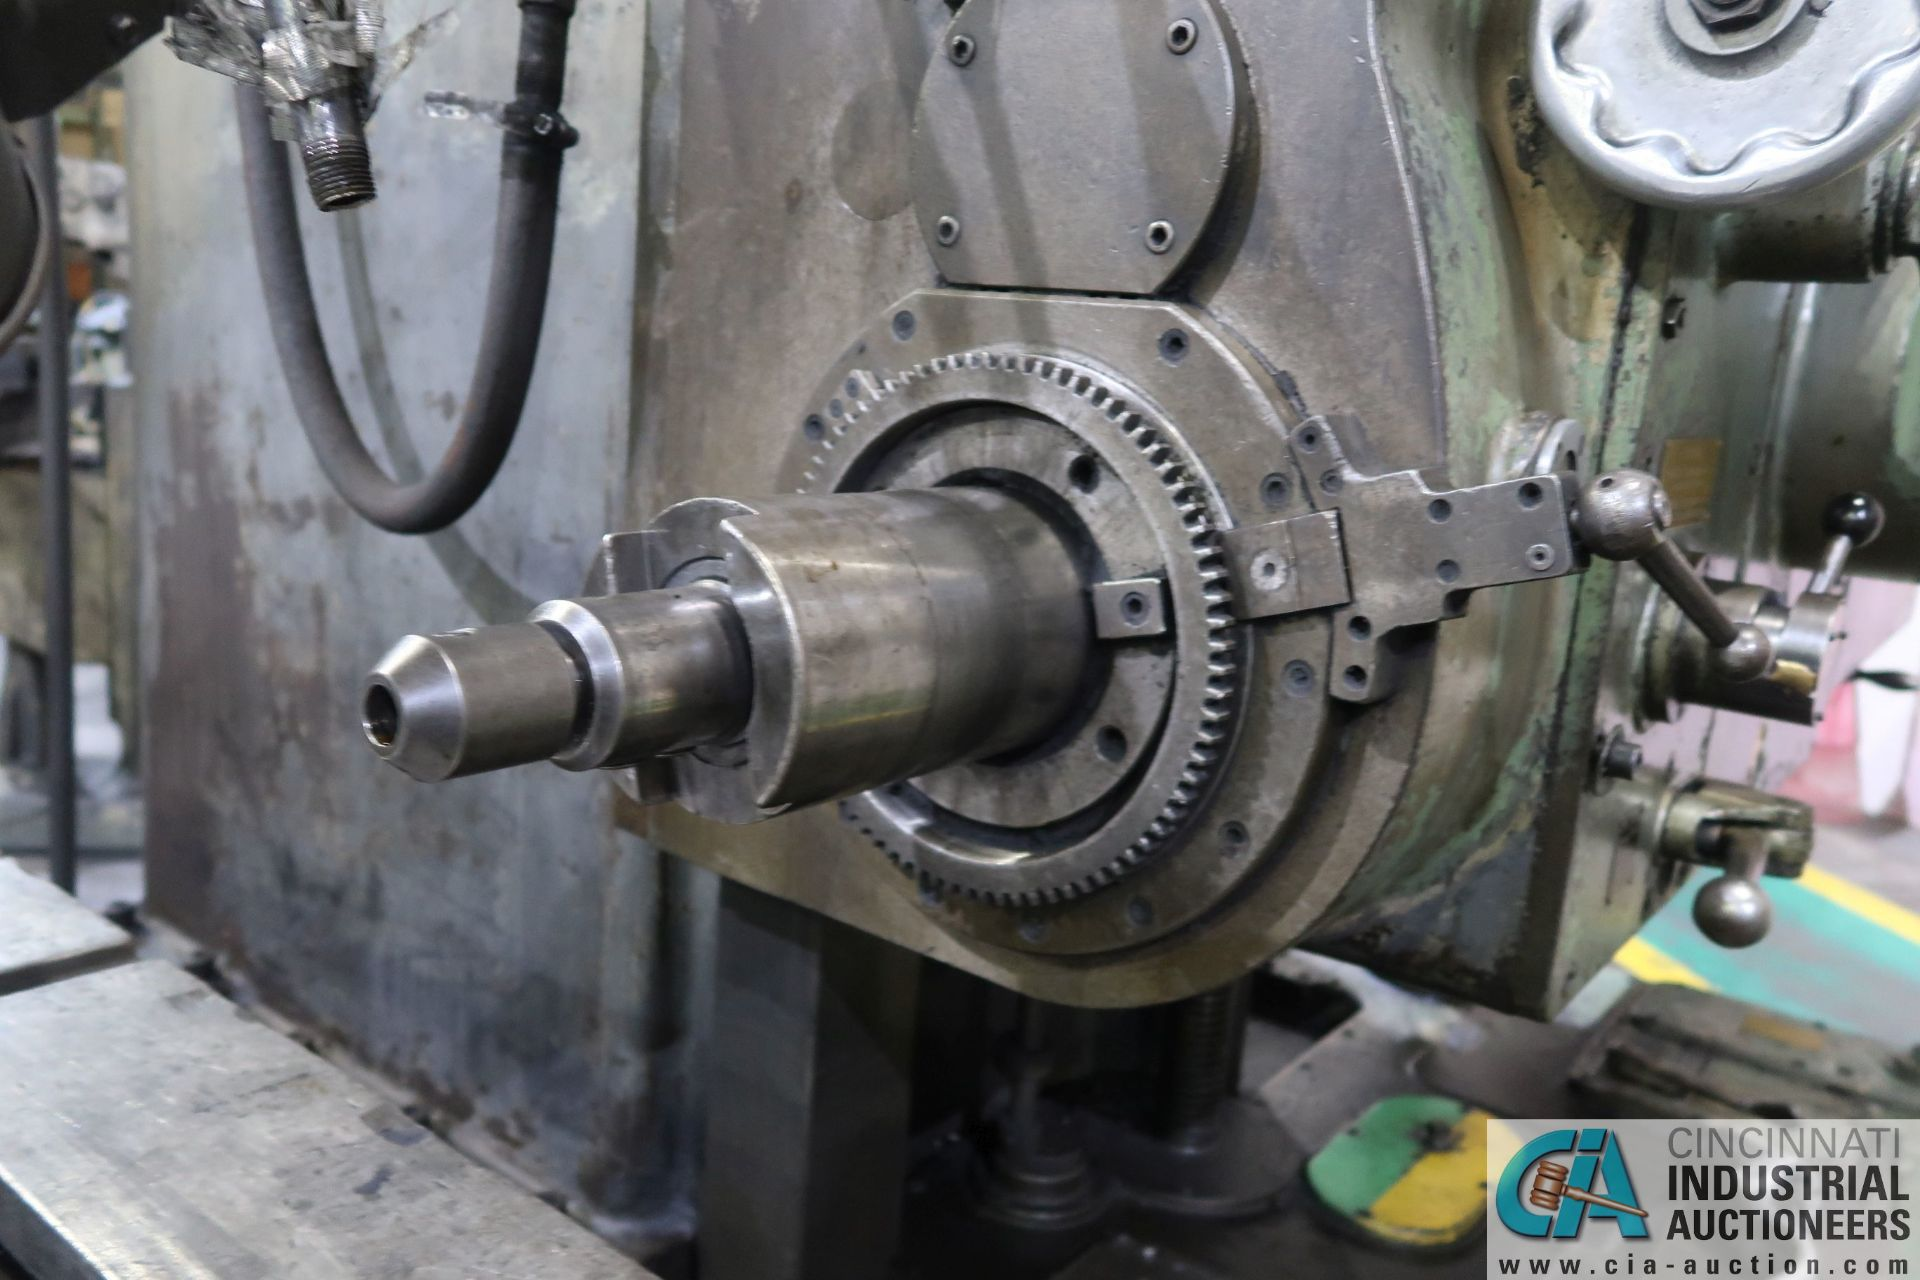 """GIDDINGS AND LEWIS MODEL 350T HORIZONTAL BORING MILL; S/N 150-90-65, 4' X 7' TABLE WITH (2) 24"""" FACE - Image 8 of 16"""